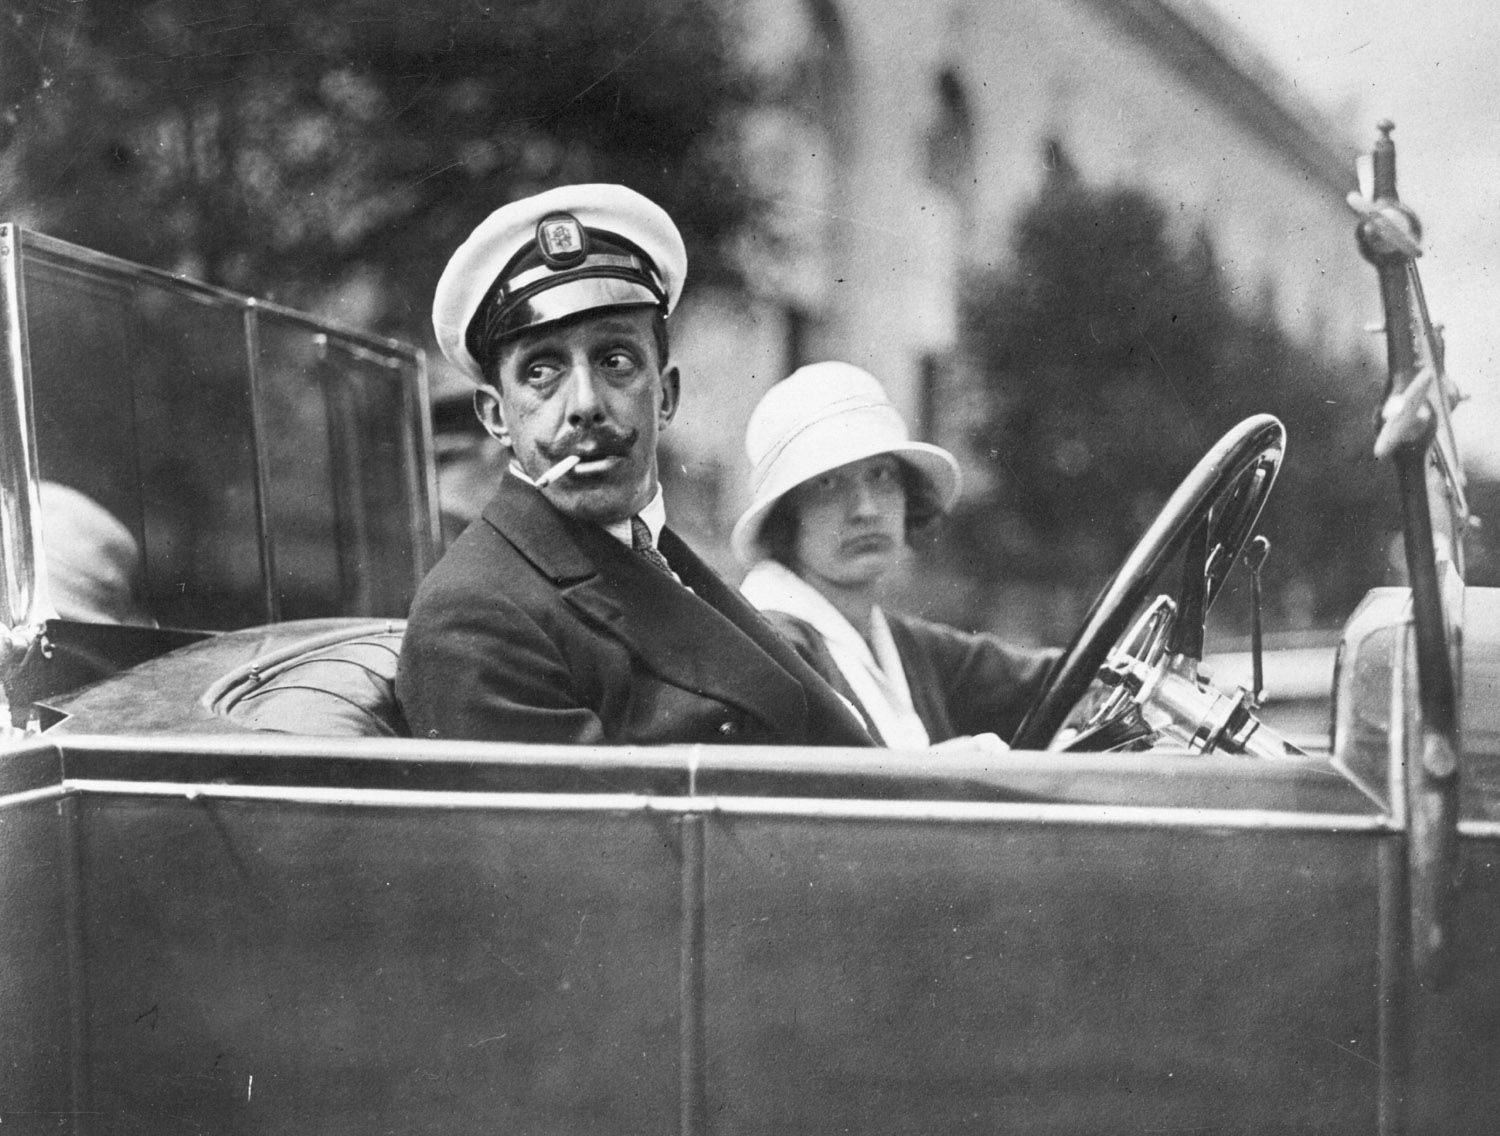 Alfonso XIII, the King of Spain from 1886 to 1931, who married Princess Ena in May, 1906, giving an early-morning ride to an admirer, circa 1920. General Photographic Agency/Getty.